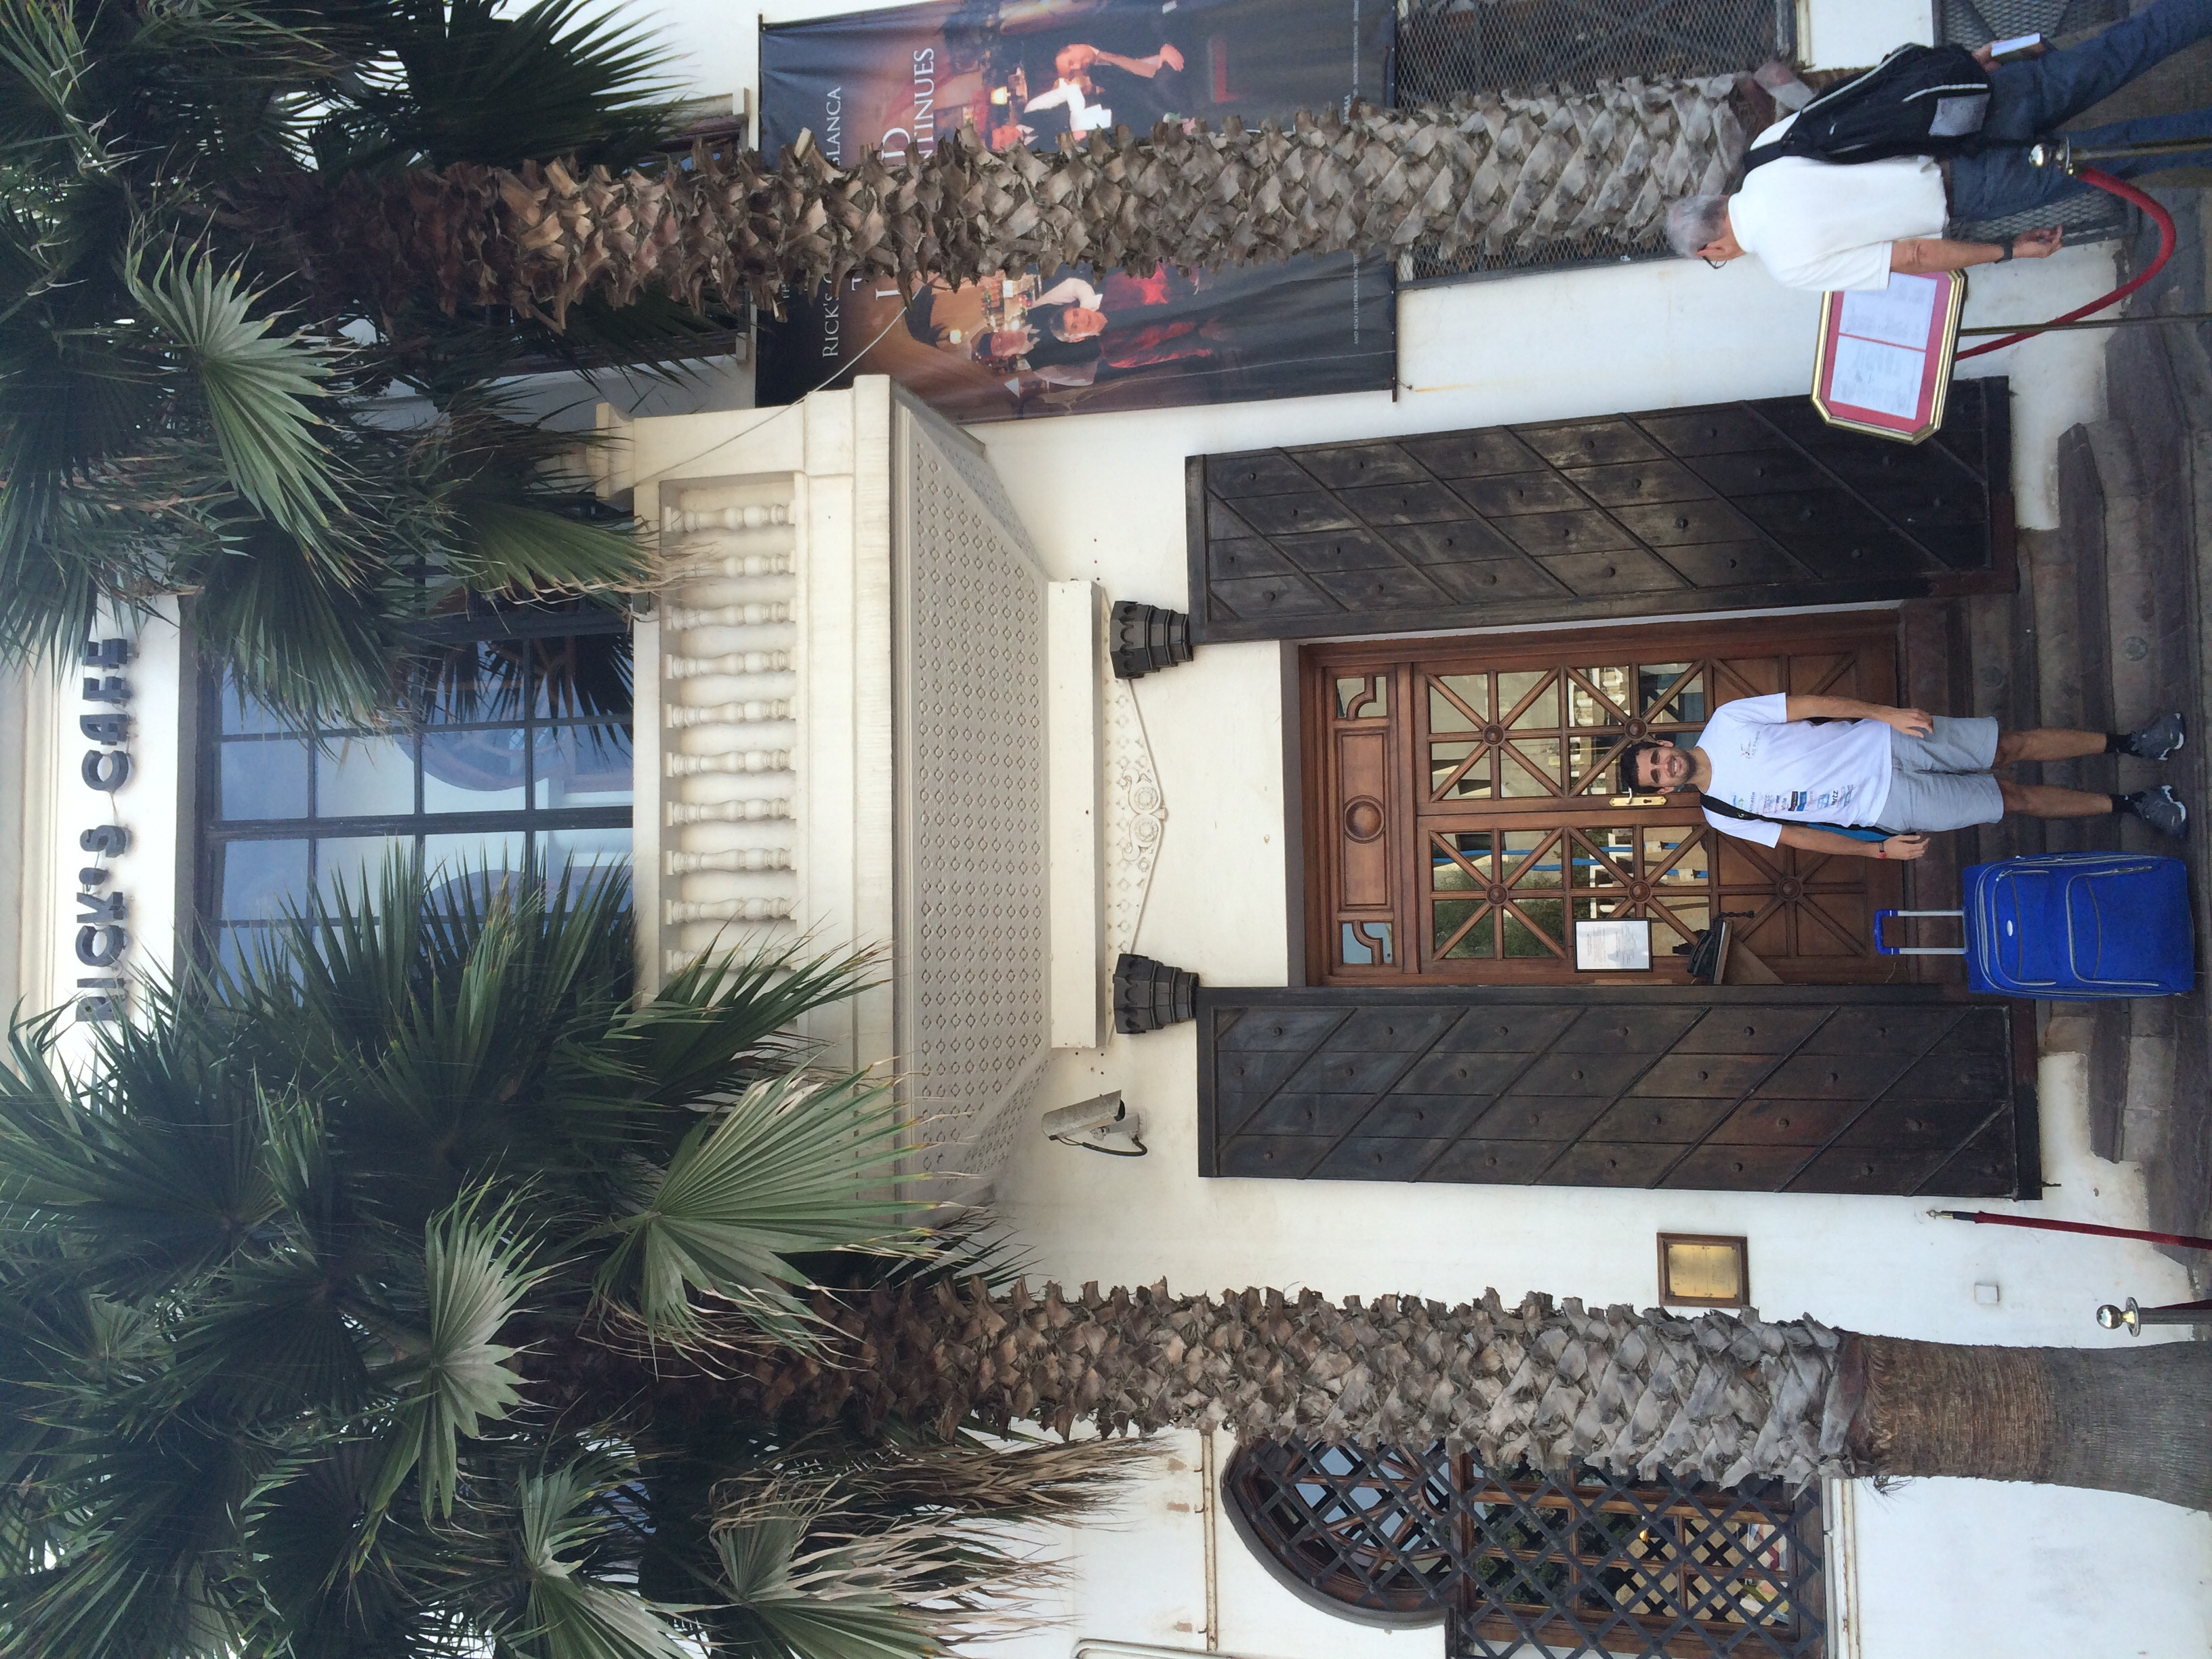 While looking for Humphrey Bogart at Rick's Cafe in Casablanca. We'll always have Paris...